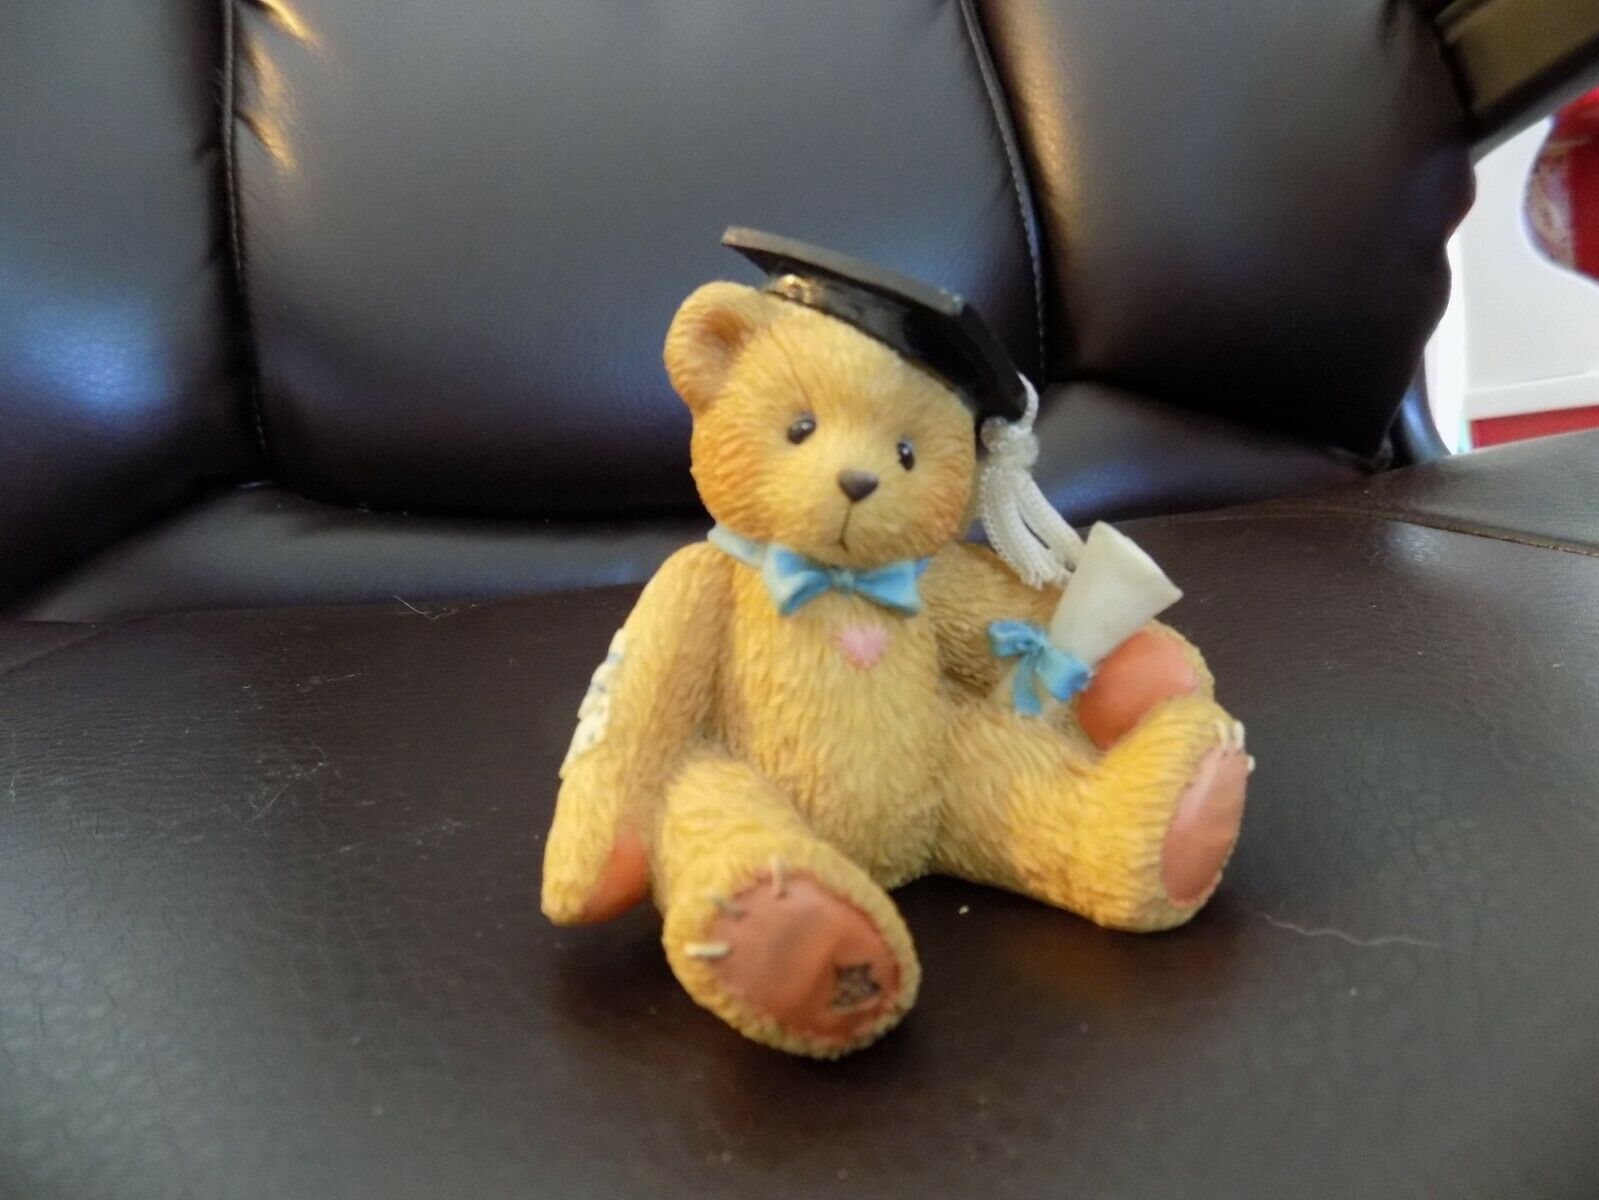 Cherished Teddies BOY Graduation Bear Figure The BEST is Yet To Come 127949 NWOB - $31.50